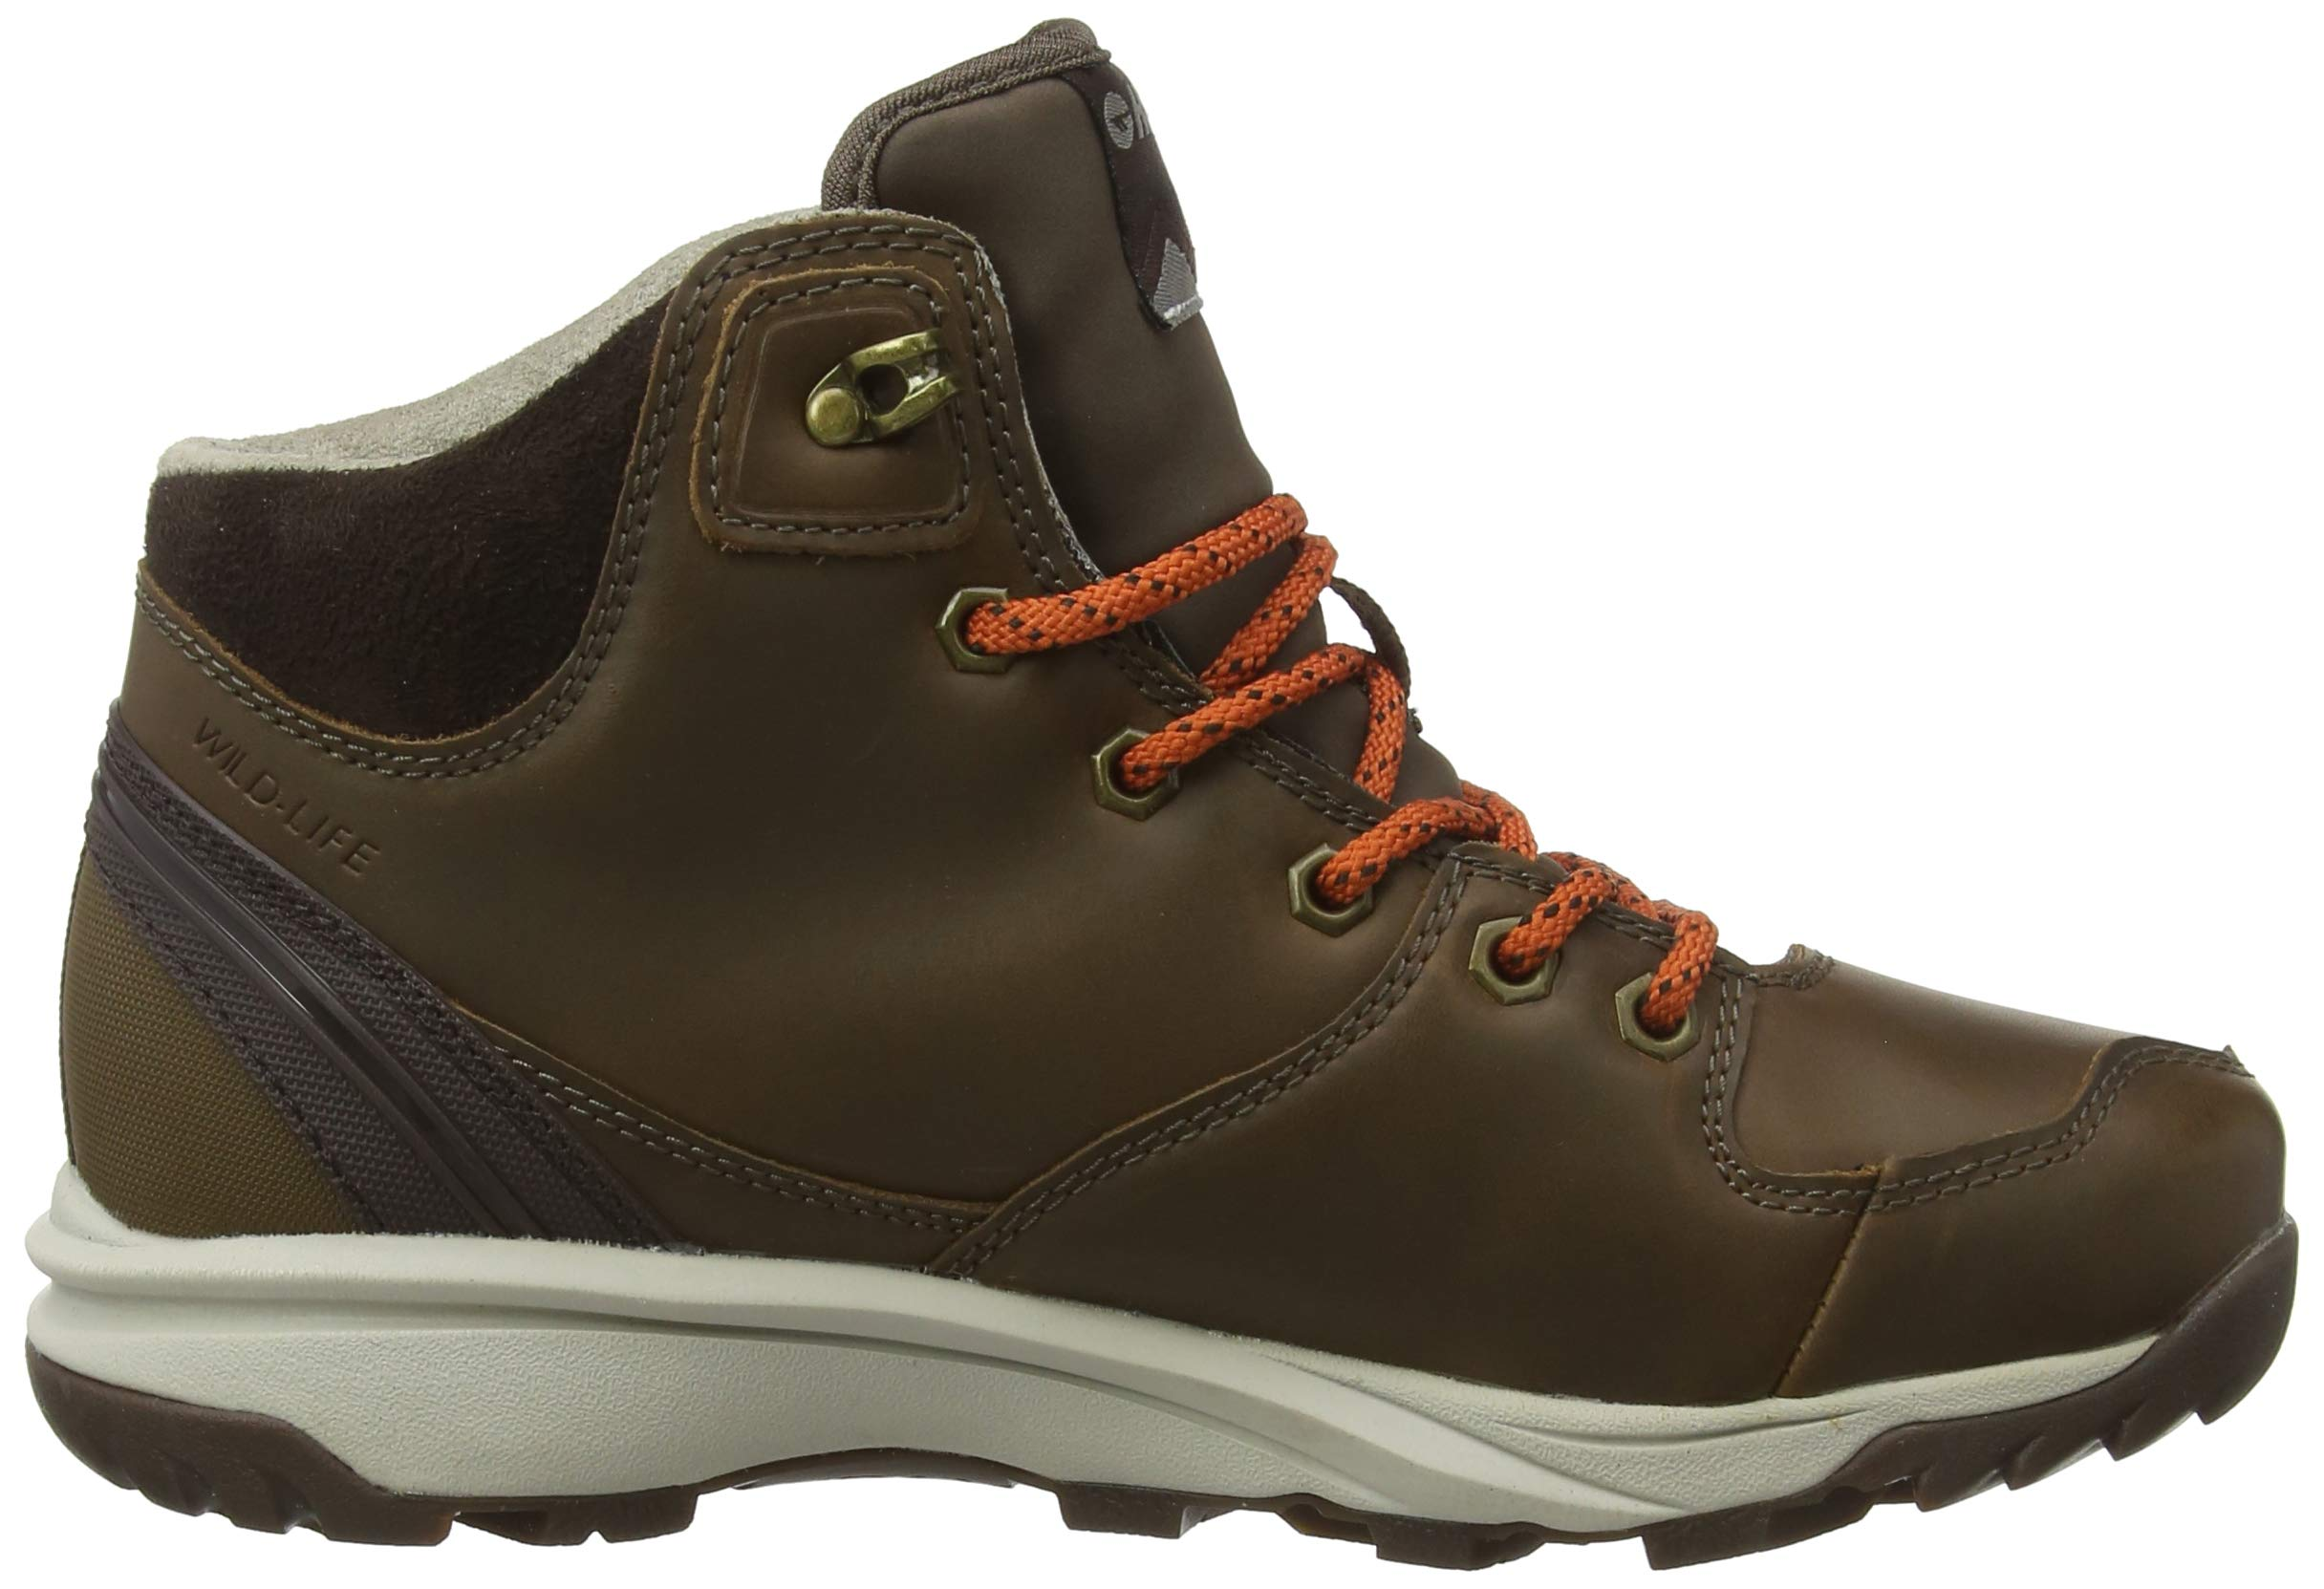 Hi-Tec Women's Wild-Life Luxe I Waterproof High Rise Hiking Boots 6